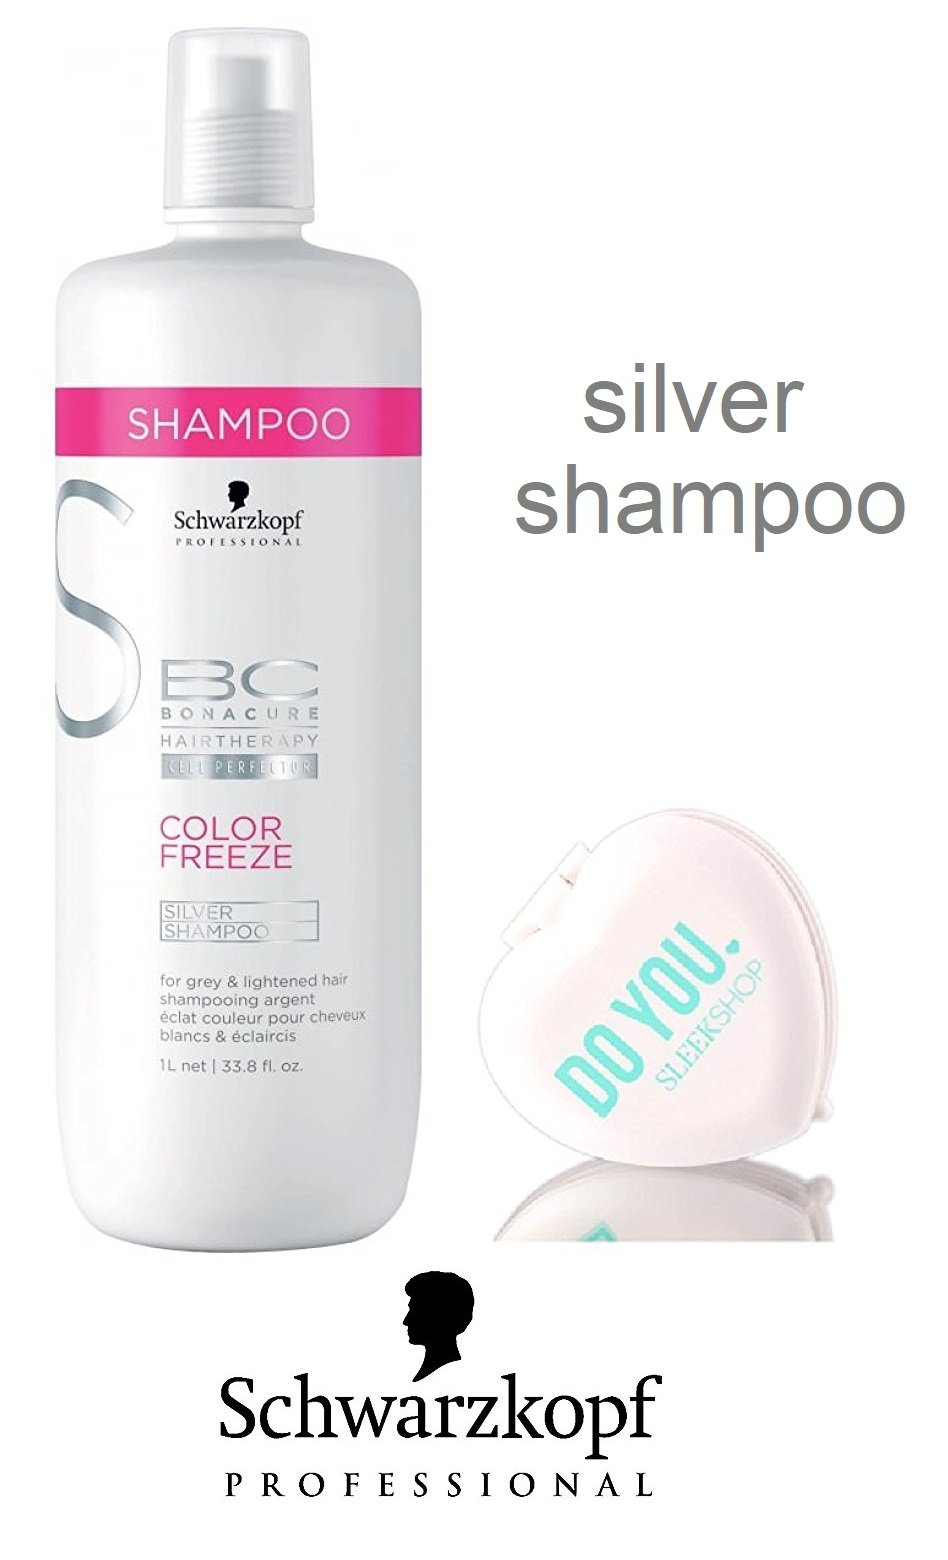 Schwarzkopf BC Bonacure Color Freeze SILVER Shampoo for grey and lightened hair (with Sleek Compact Mirror) (33.8 oz / 1000ml - large liter size) by Schwarzkopf